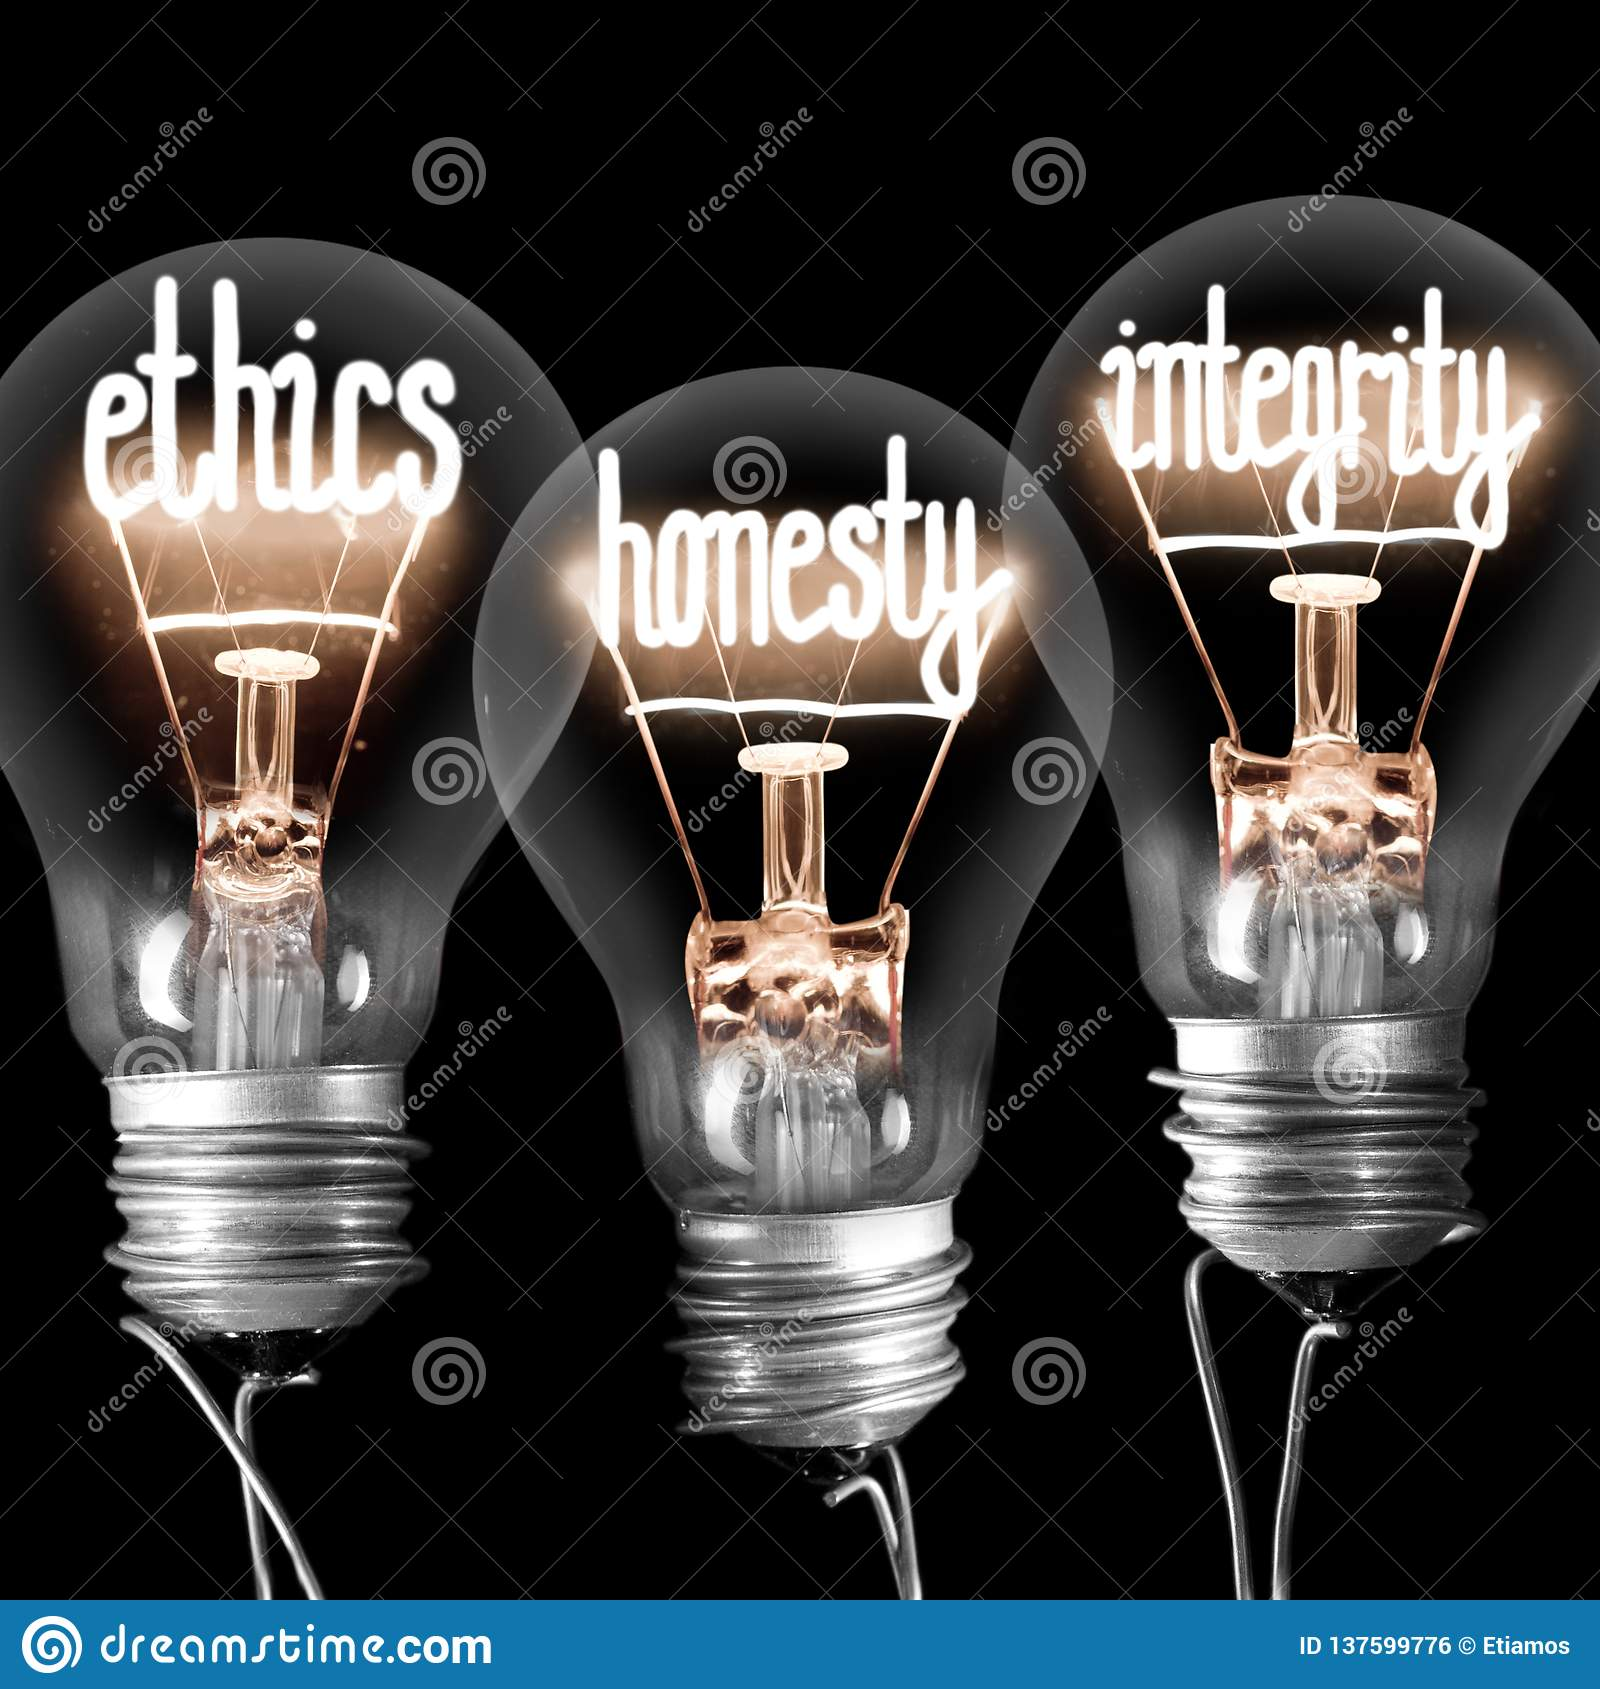 Light Bulbs with Ethics, Honesty and Integrity Concept